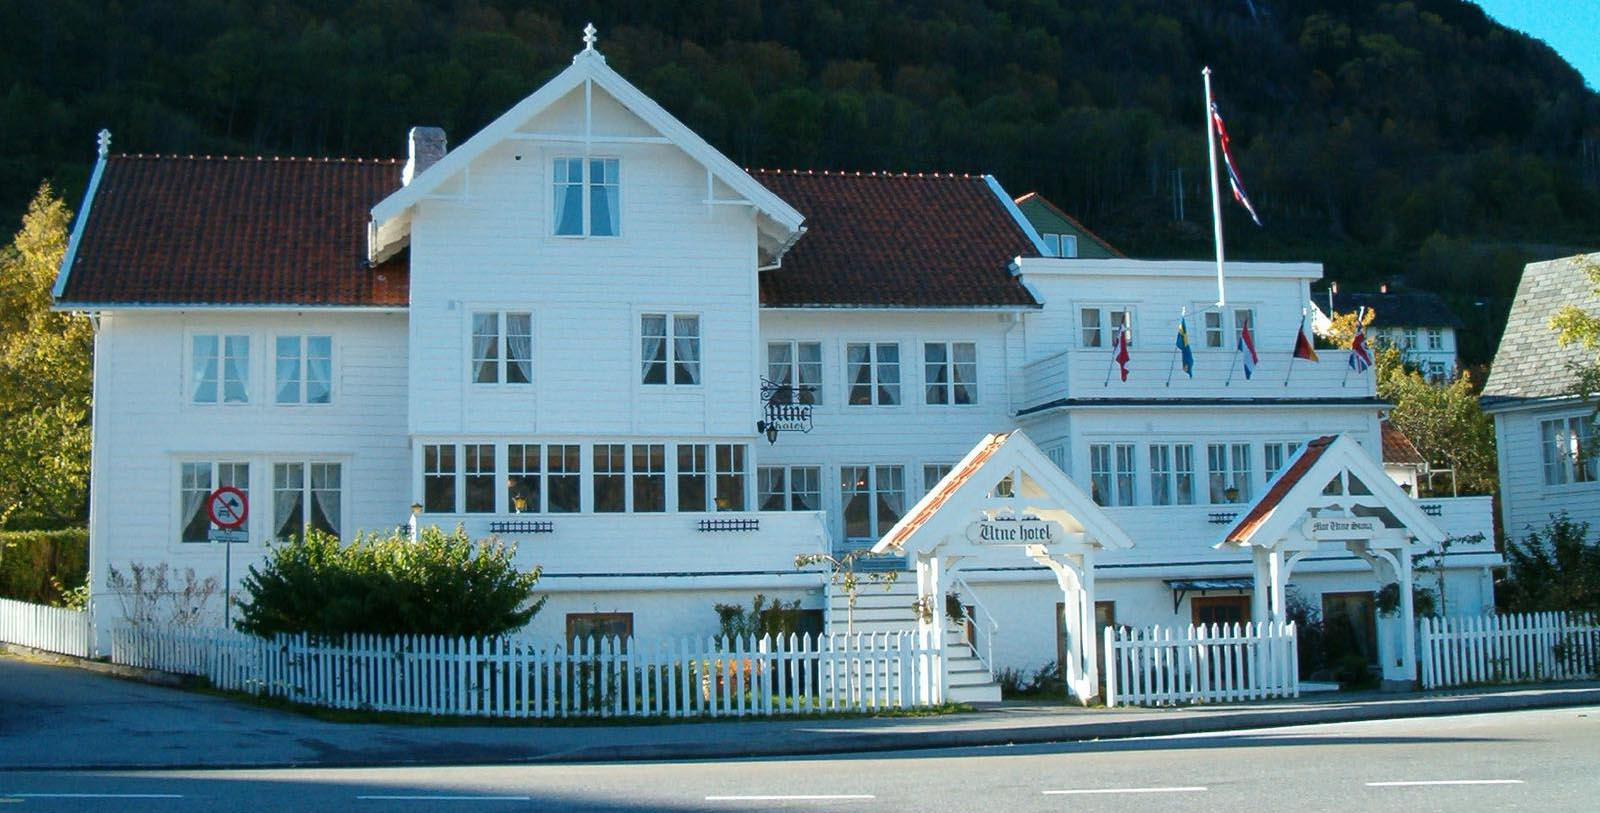 Image of Hotel Exterior Utne Hotel, 1722, Member of Historic Hotels Worldwide, in Utne, Norway, Overview